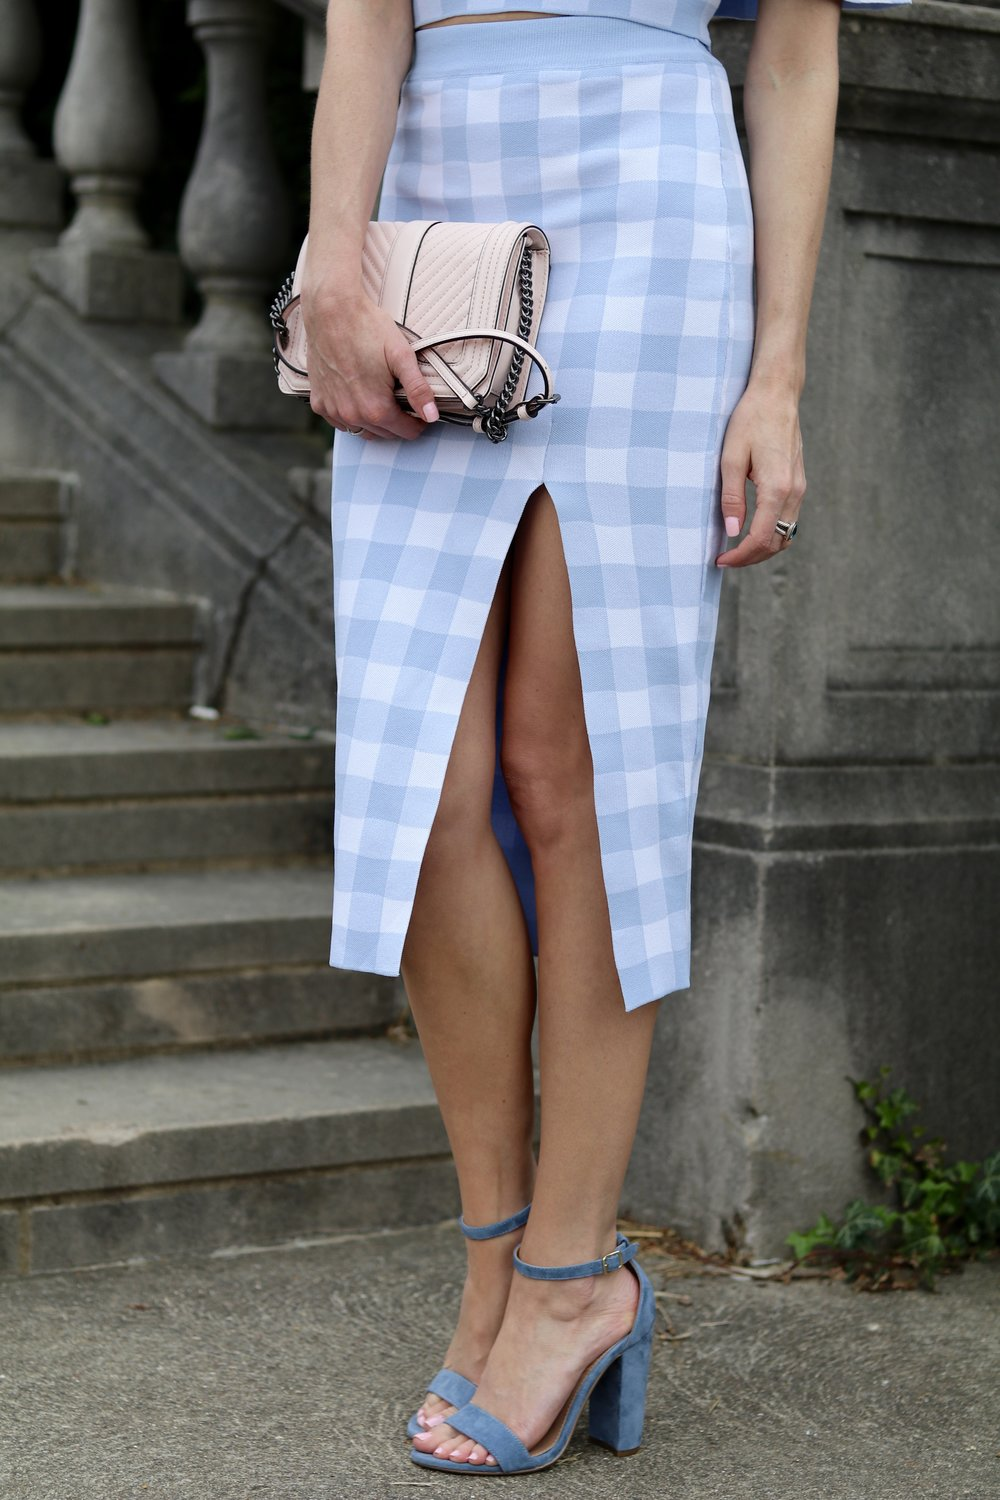 gilt edge | gingham skirt and top